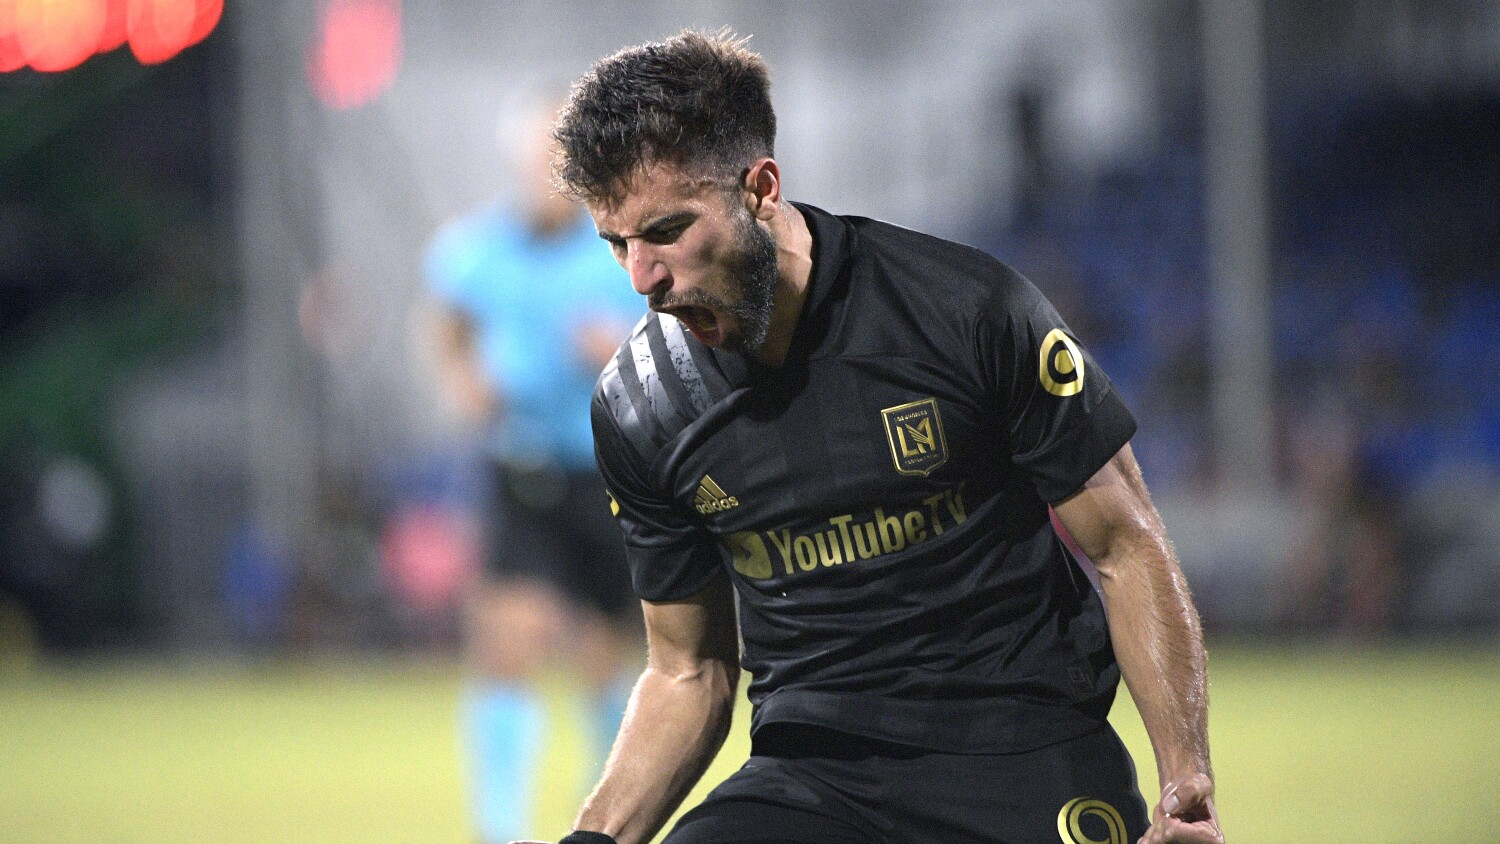 Diego Rossi's two goals lead LAFC to win over Earthquakes